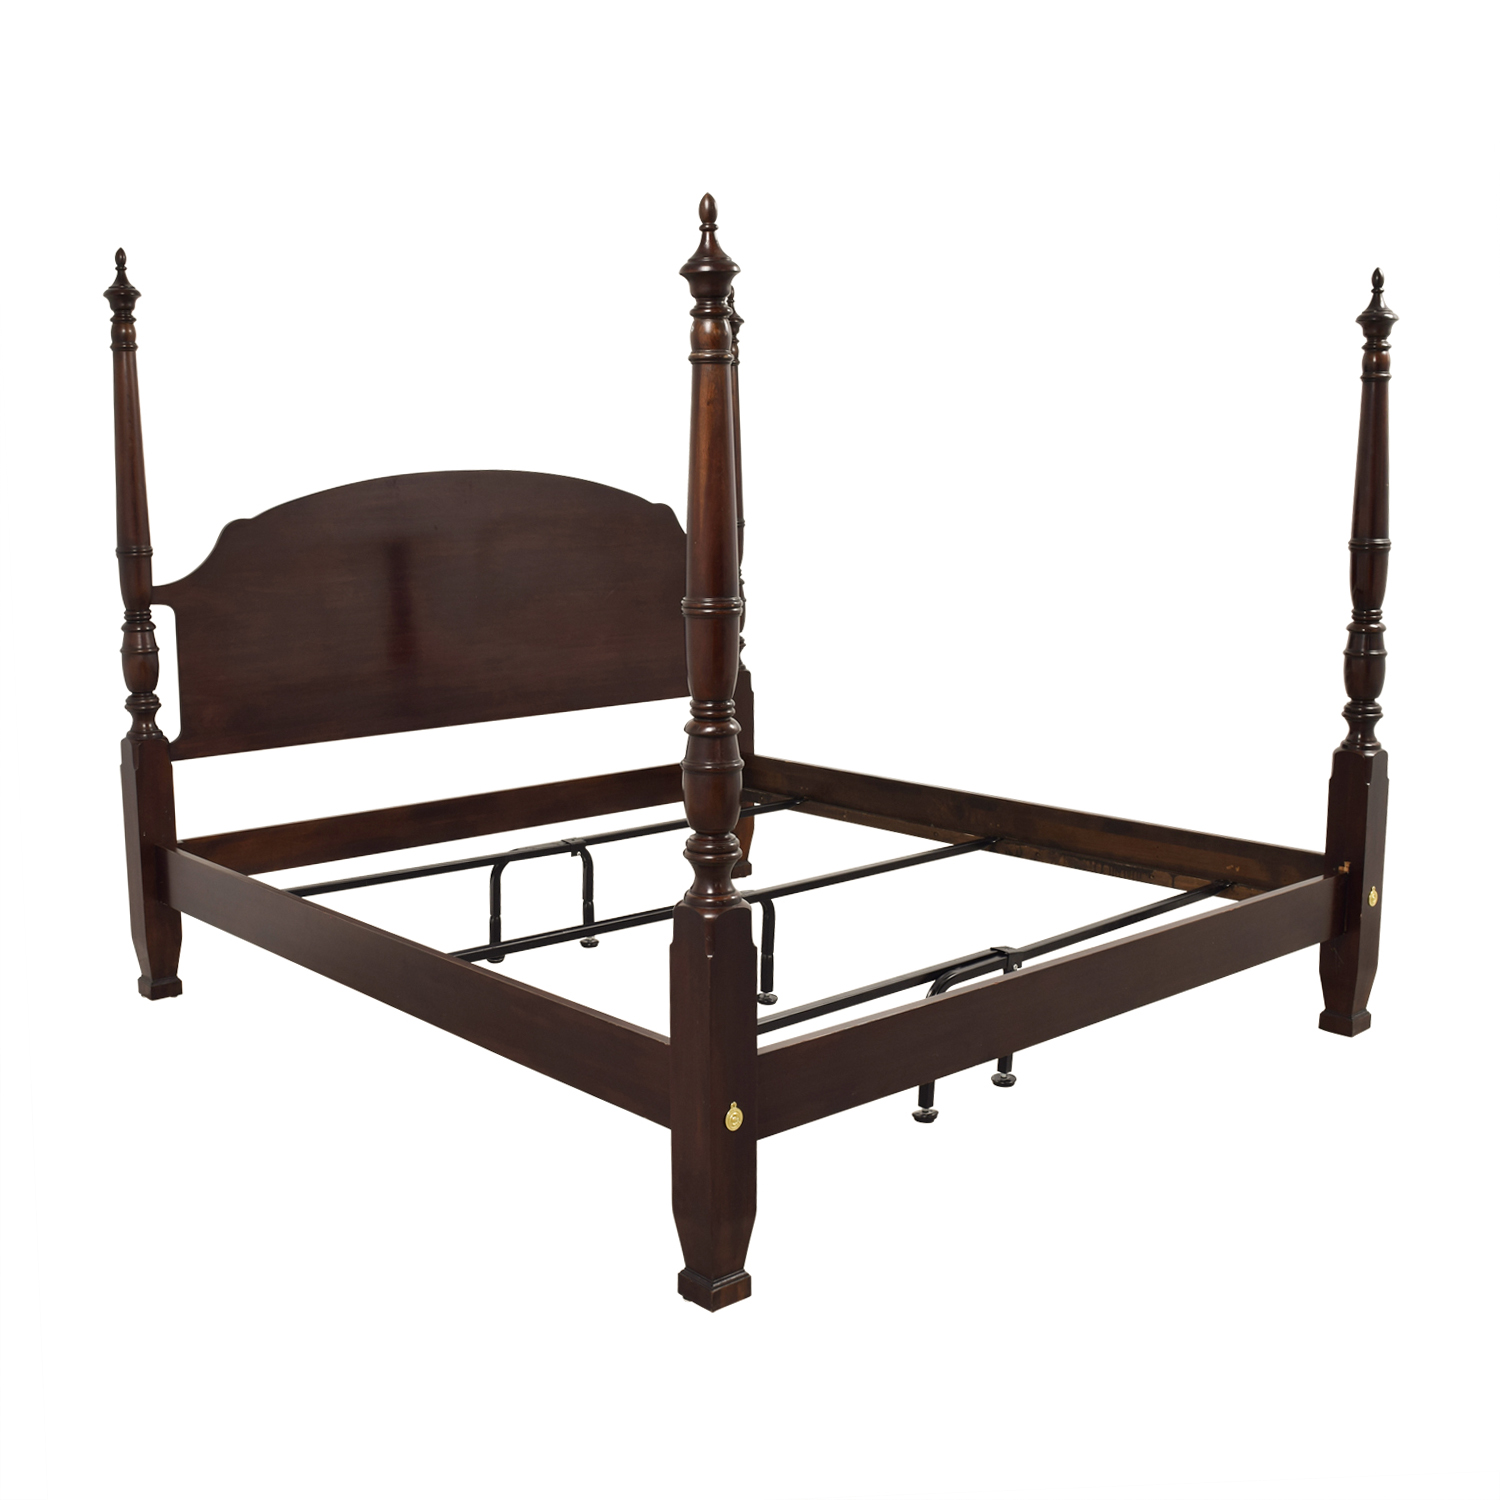 75 harden harden mahogany four poster king bed frame beds